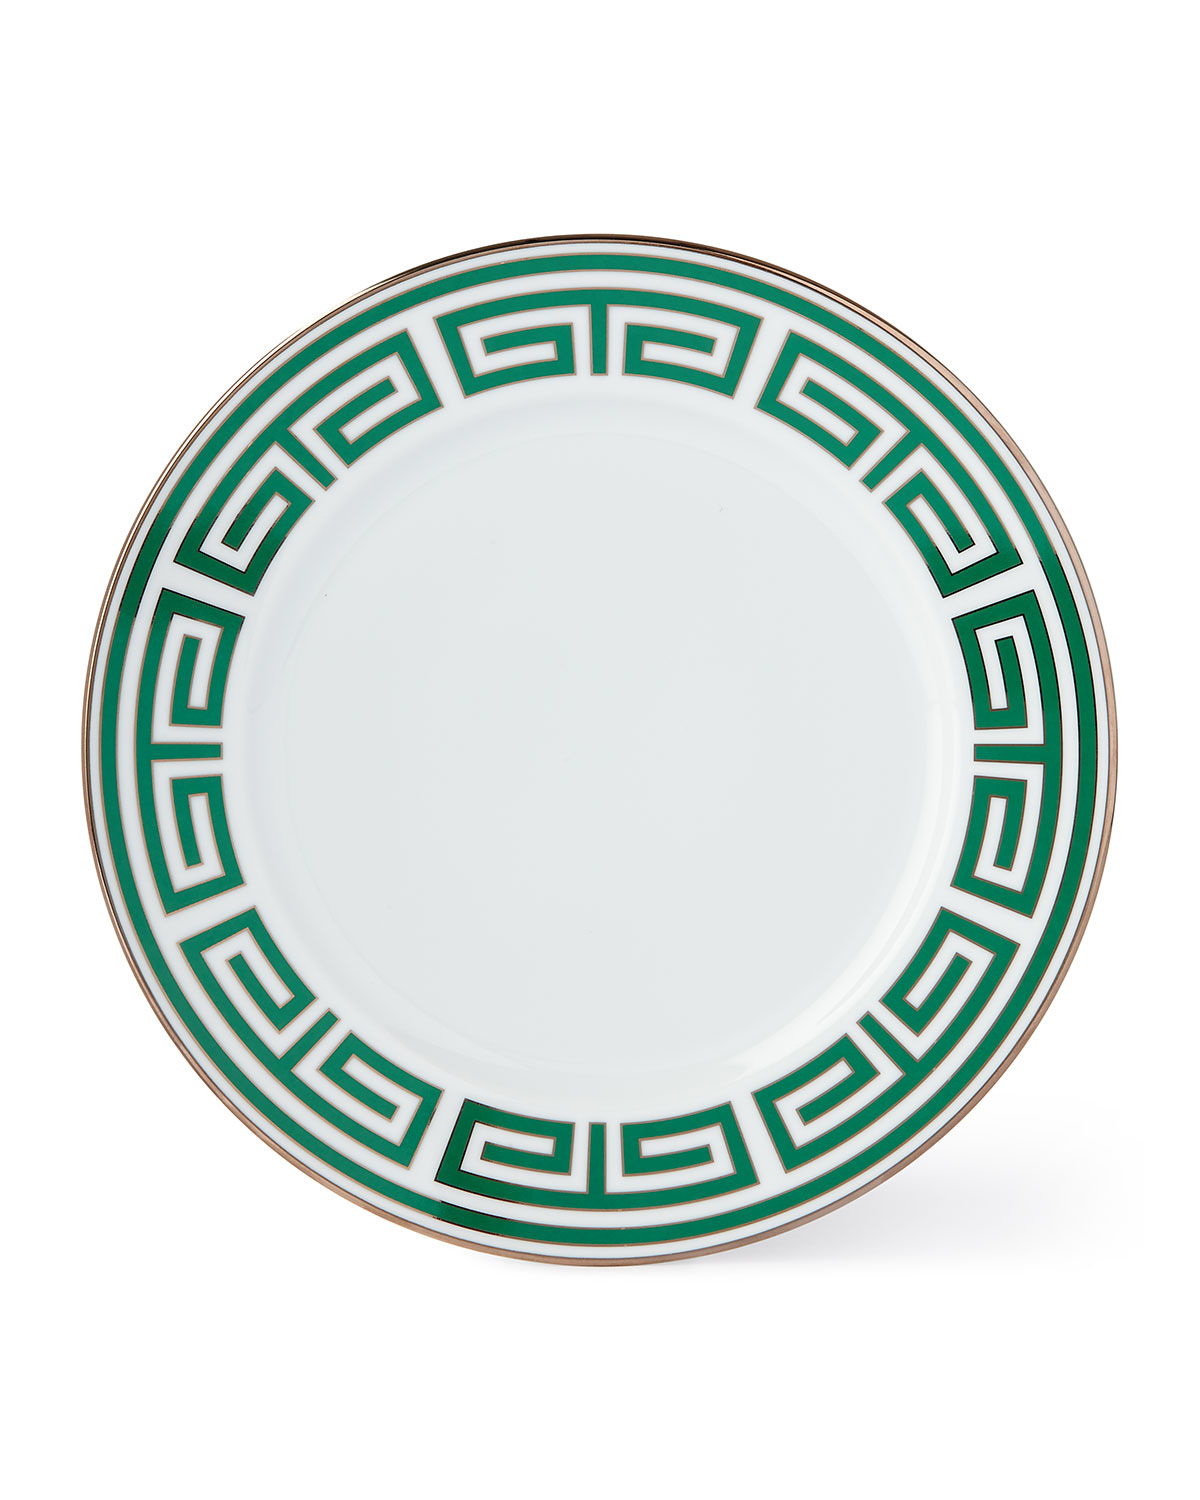 Labirinto Green Dinner Plate